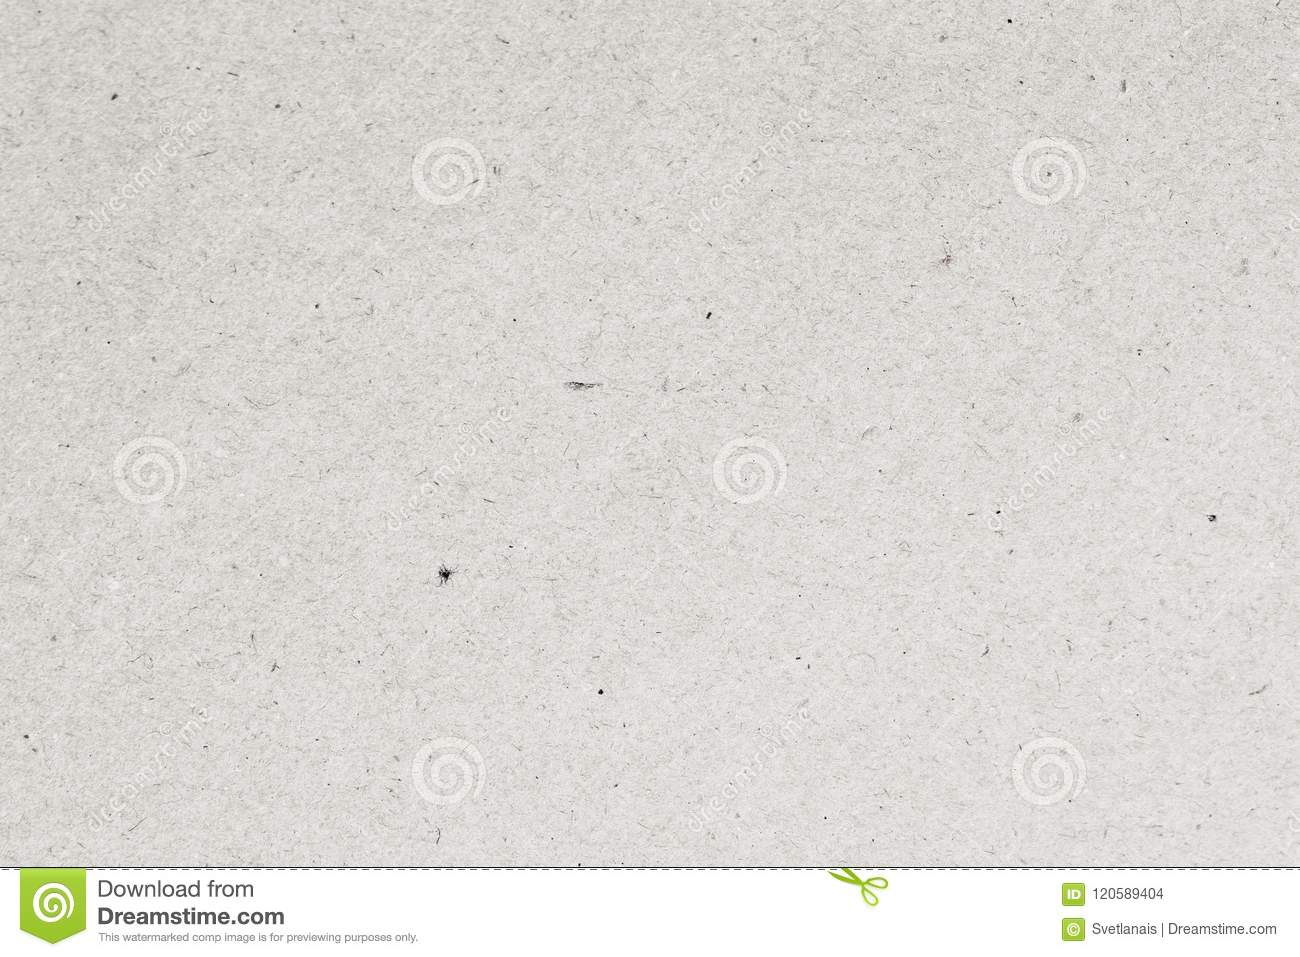 Light paper texture cardboard background close-up. Grunge old paper surface texture with small inclusions of cellulose